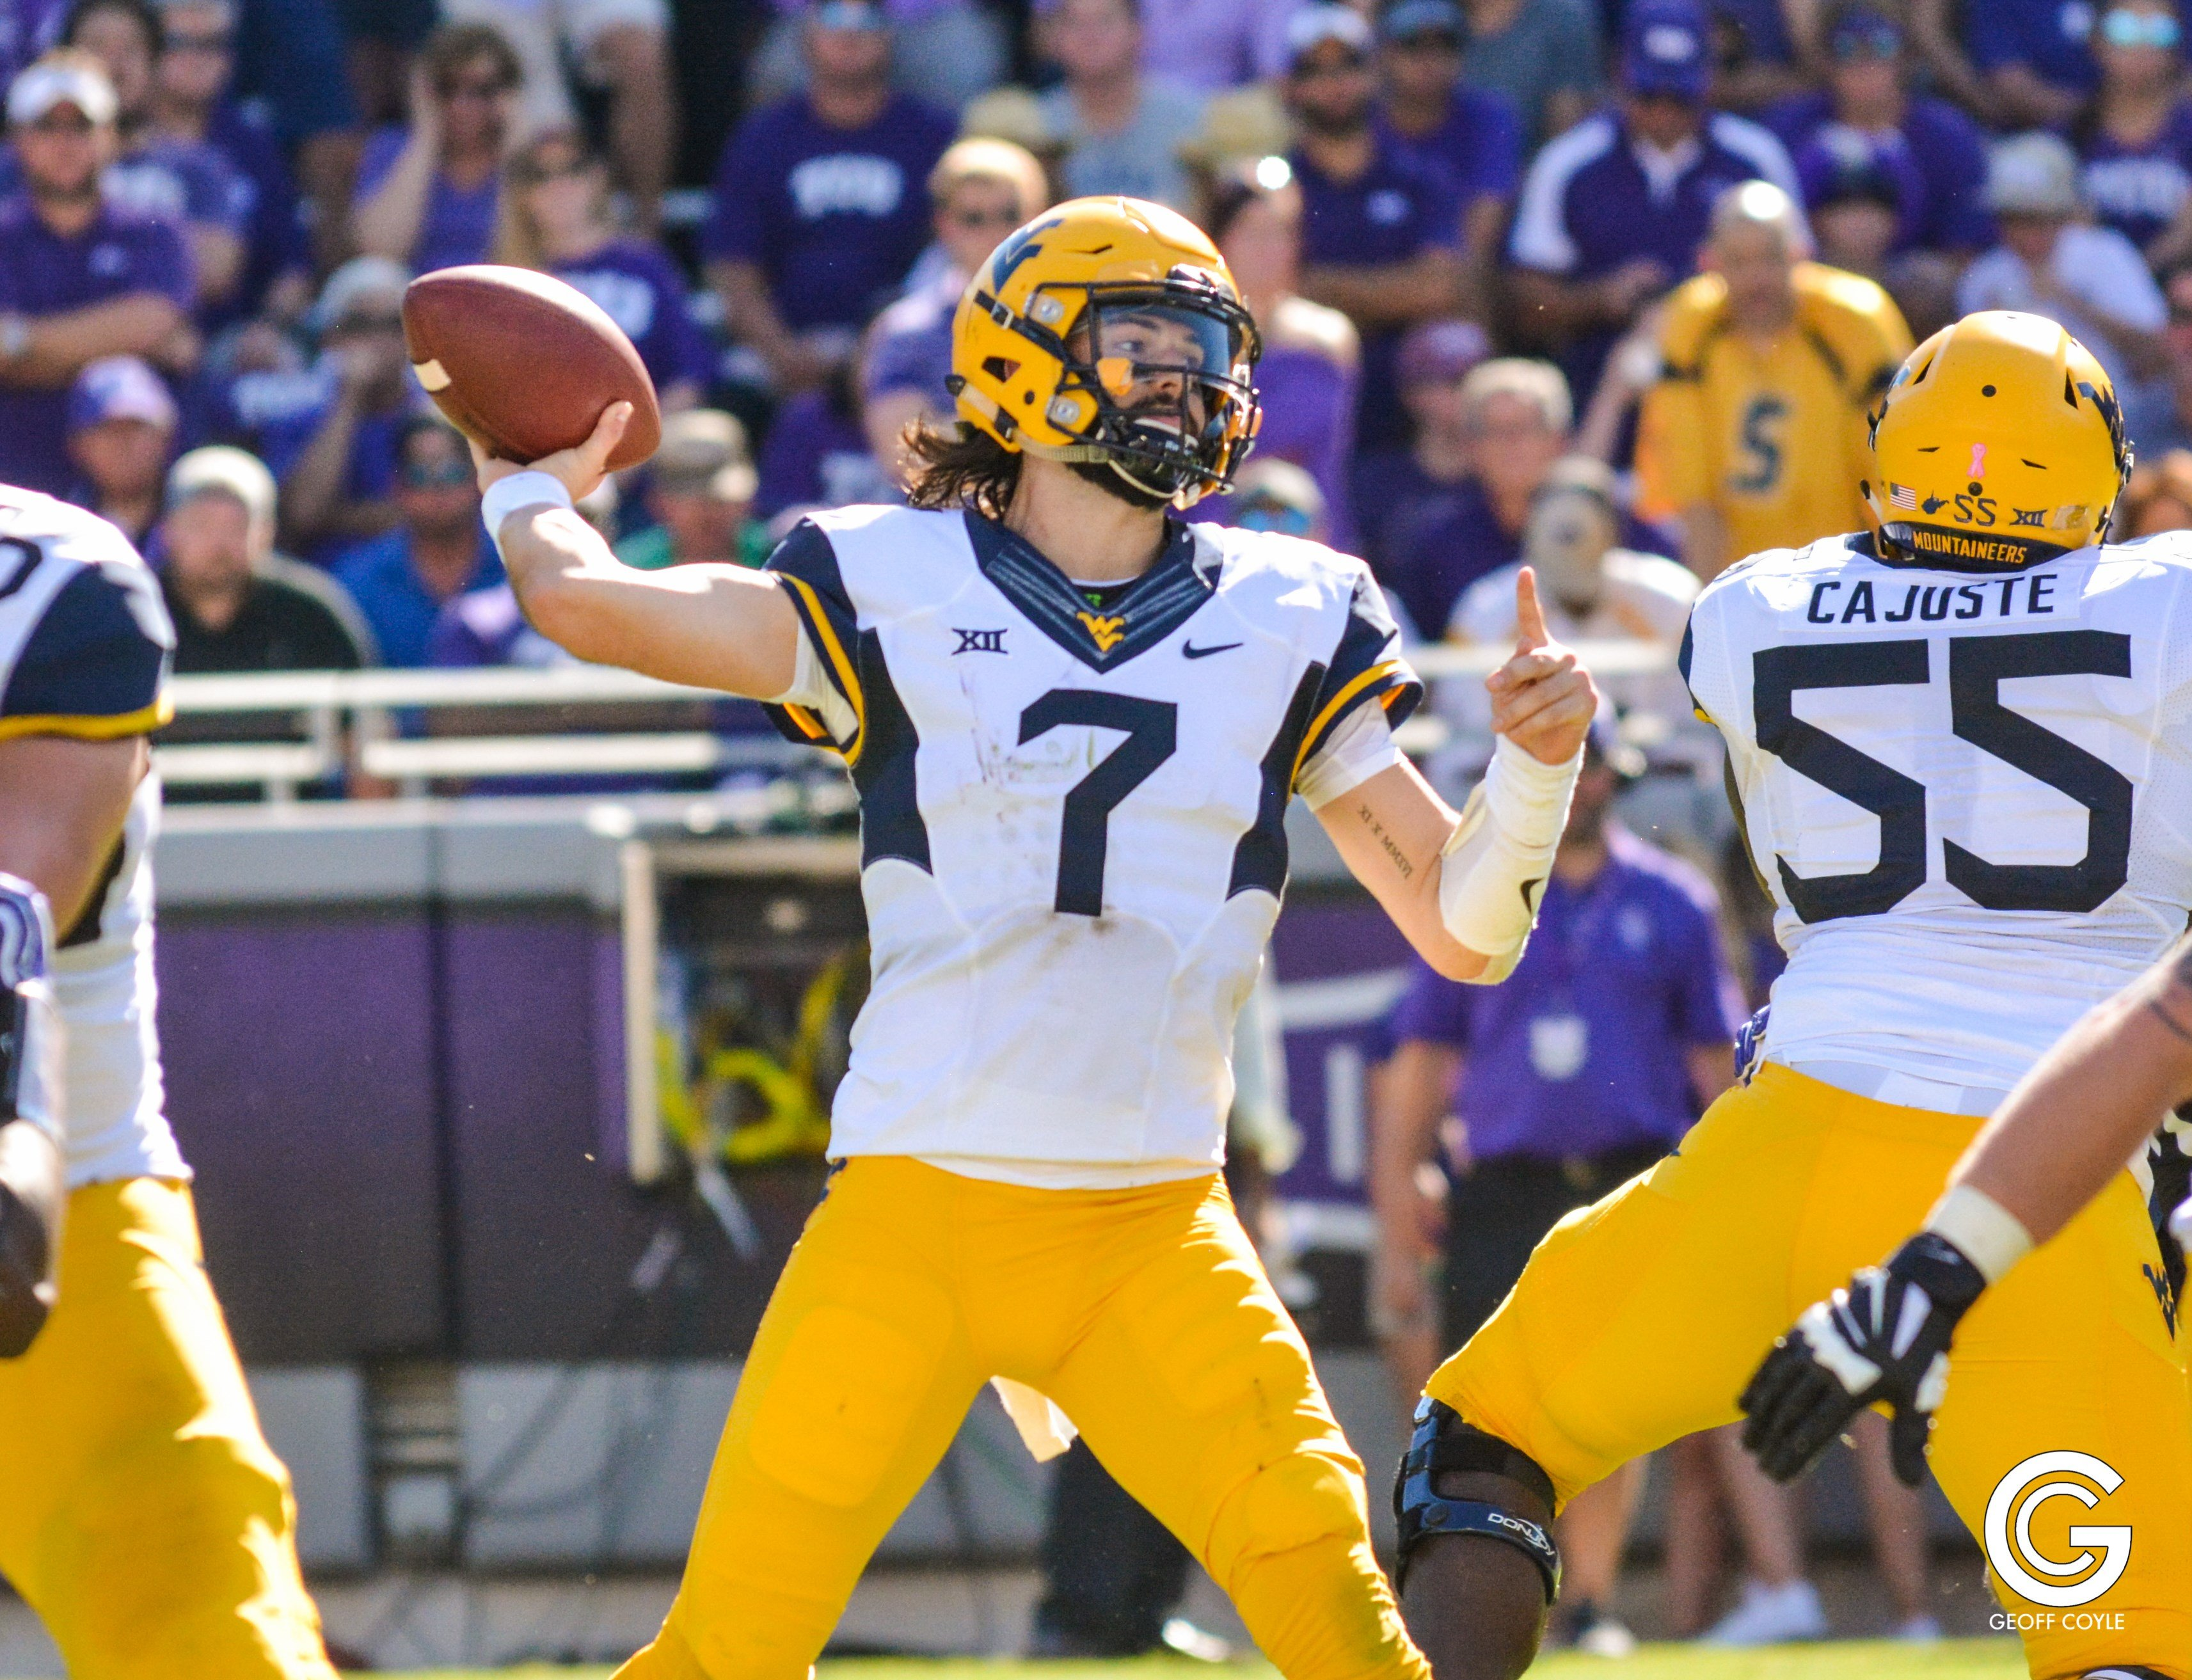 Will Grier eyes a receiver down field against TCU. (PHOTO: Geoff Coyle)